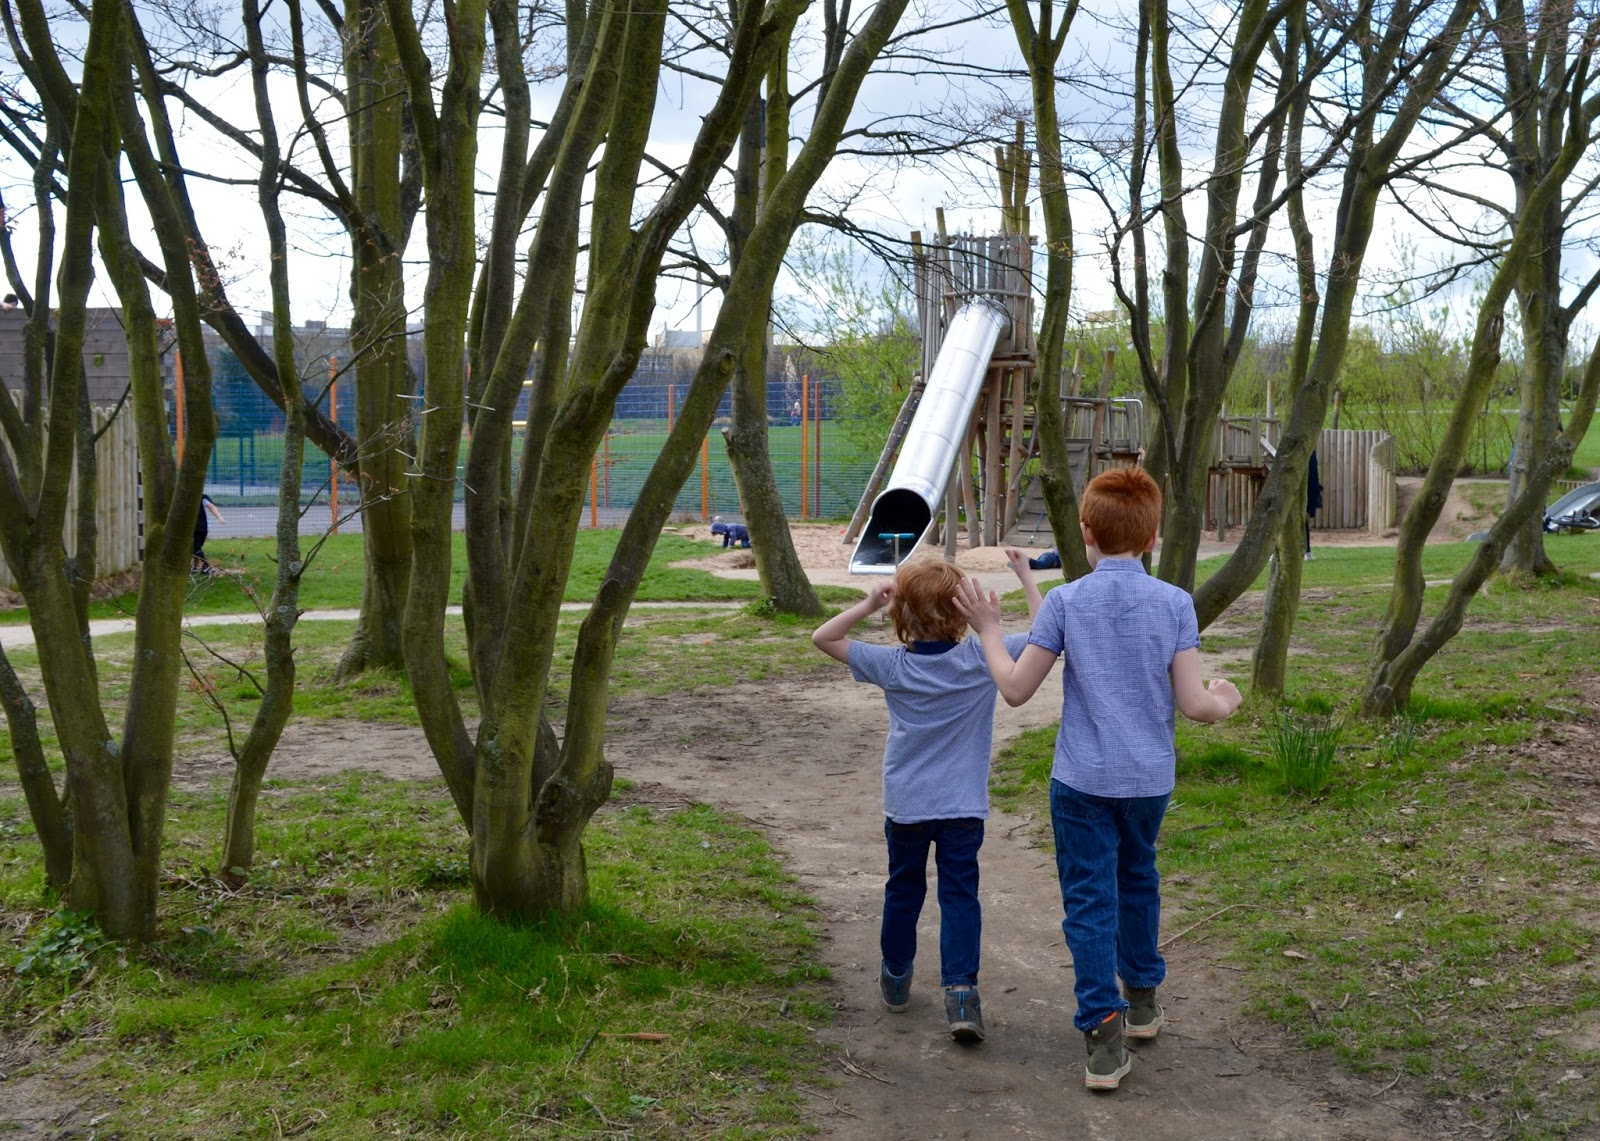 Exhibition Park Newcastle |  Adventure playground and tube slide for older kids